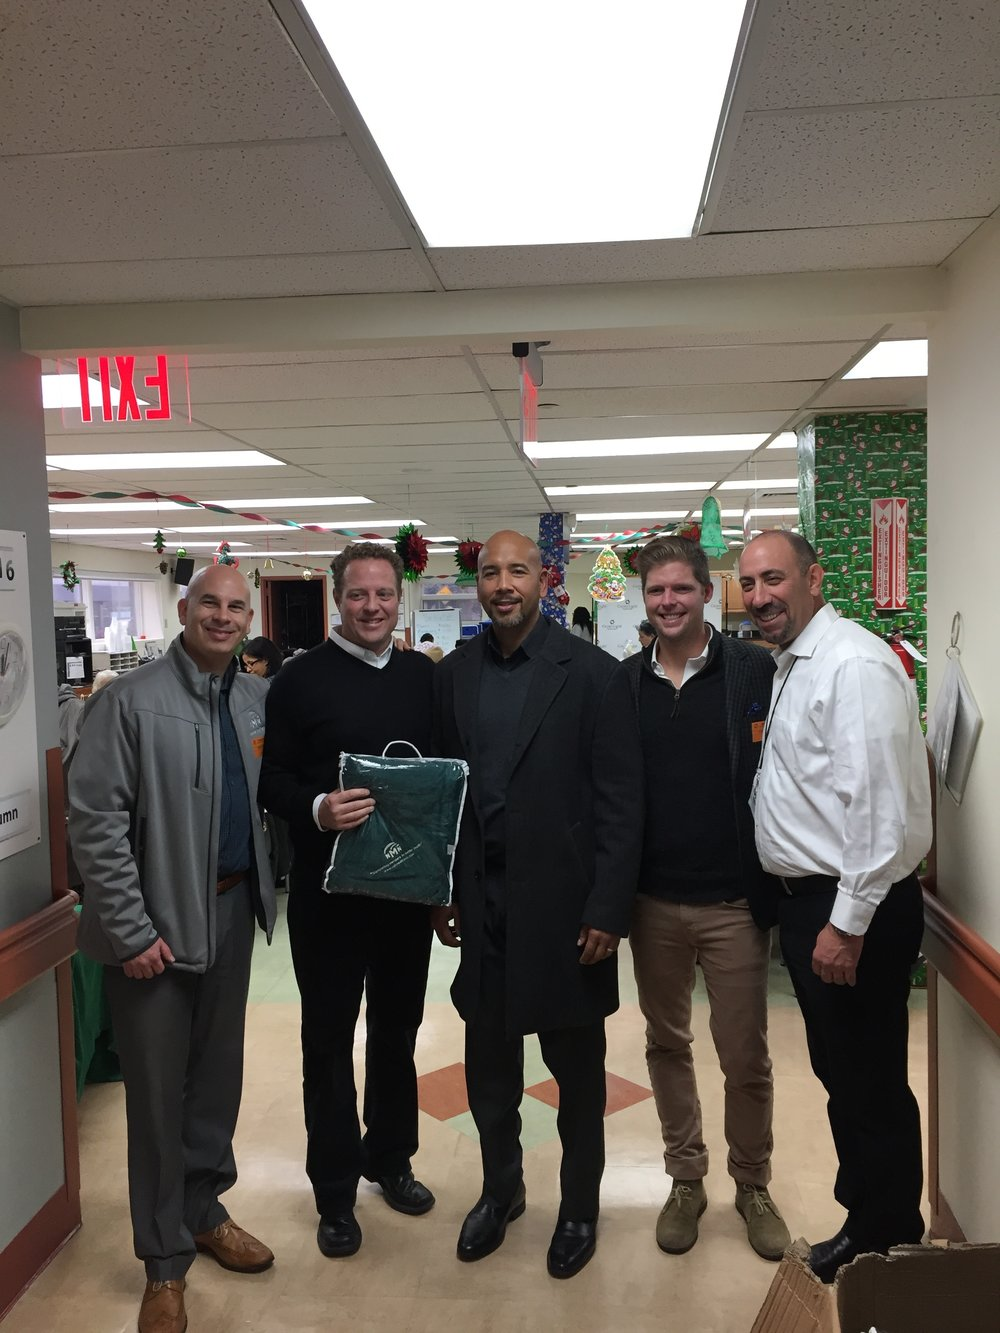 Members of National MedTrans executive team at a recent NMN Cares event donating blankets to members. Bronx Borough President,Rubén Díaz Jr., also participated in the event. From left to right: Andrew Winakor (CEO), Steve Wilson, (CXO),Rubén Díaz Jr.(Bronx Borough President), Billy McKee (President), Greg Billing (EVP)